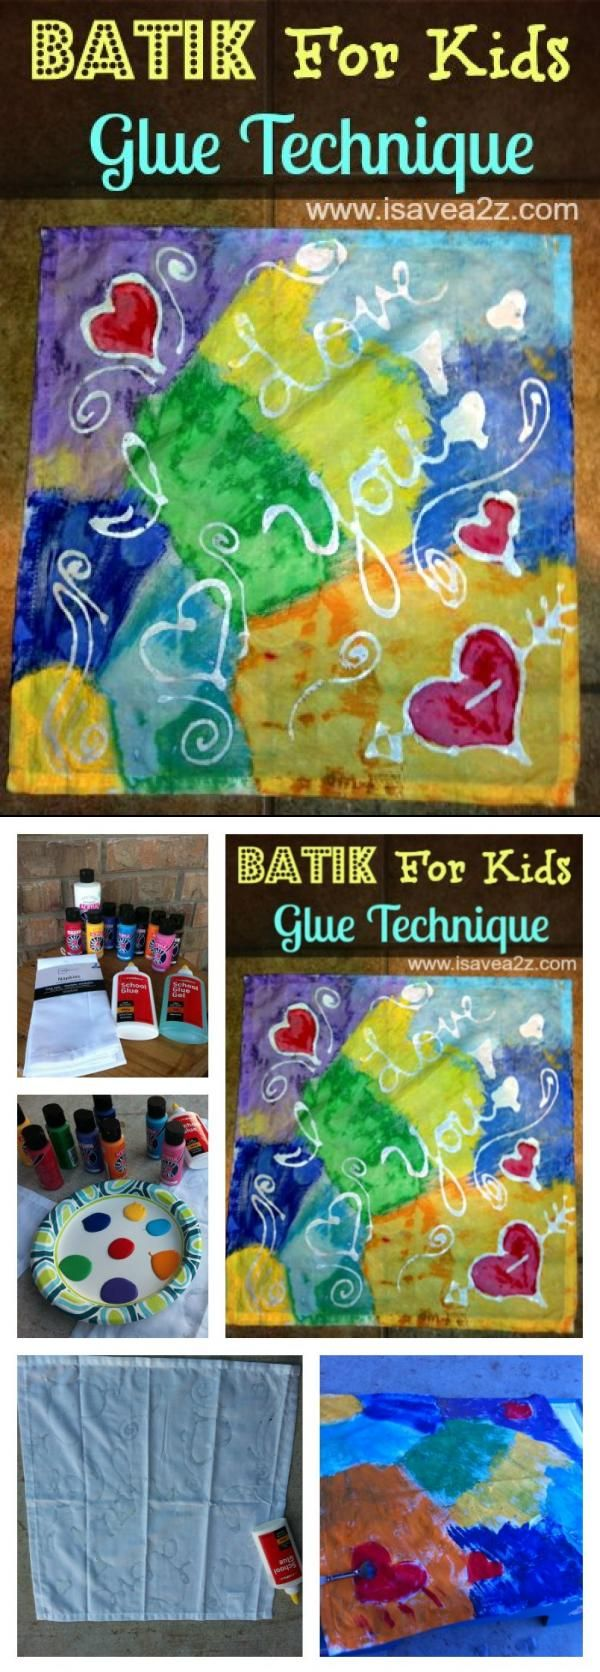 Batik For Kids Art Project Idea!  This one is done with Elmer's Glue. http://www.isavea2z.com/batik-for-kids-art-project/